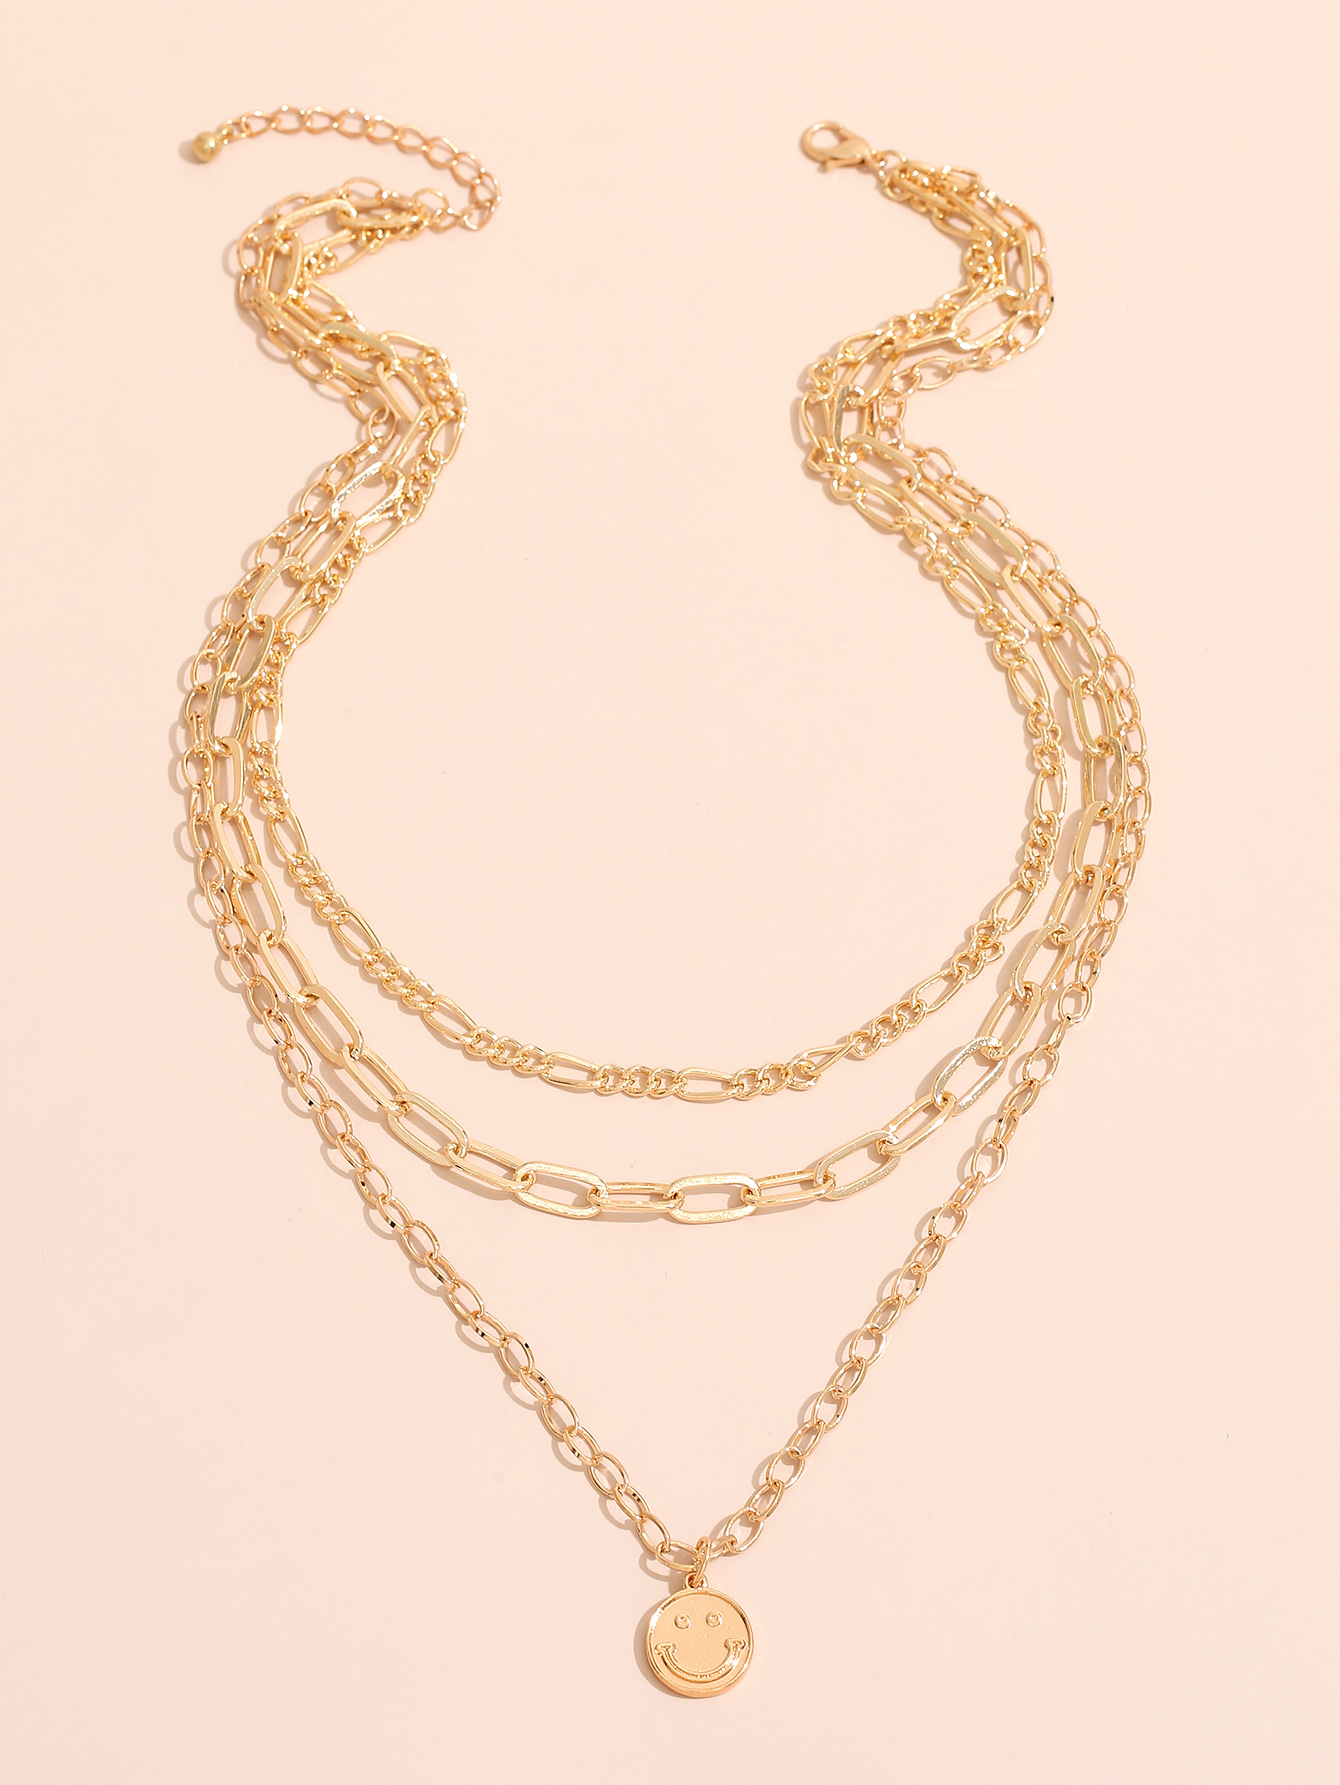 Nihaojewelry wholesale jewelry fashion smiling pendent multilayer necklace NHAJ384663